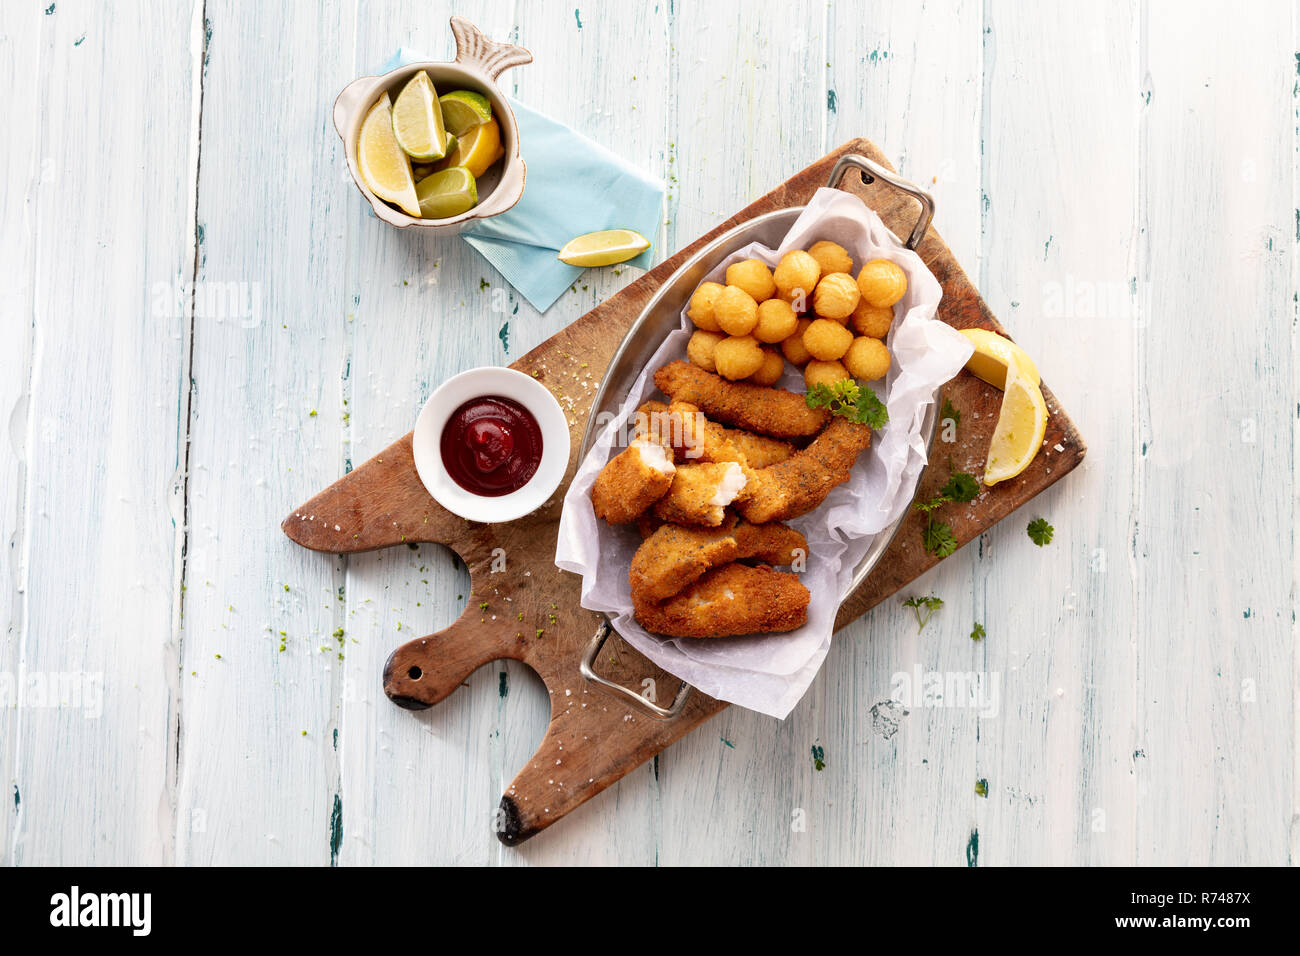 Cheese croquettes and potato balls on cutting board with tomato sauce , still life, overhead view - Stock Image